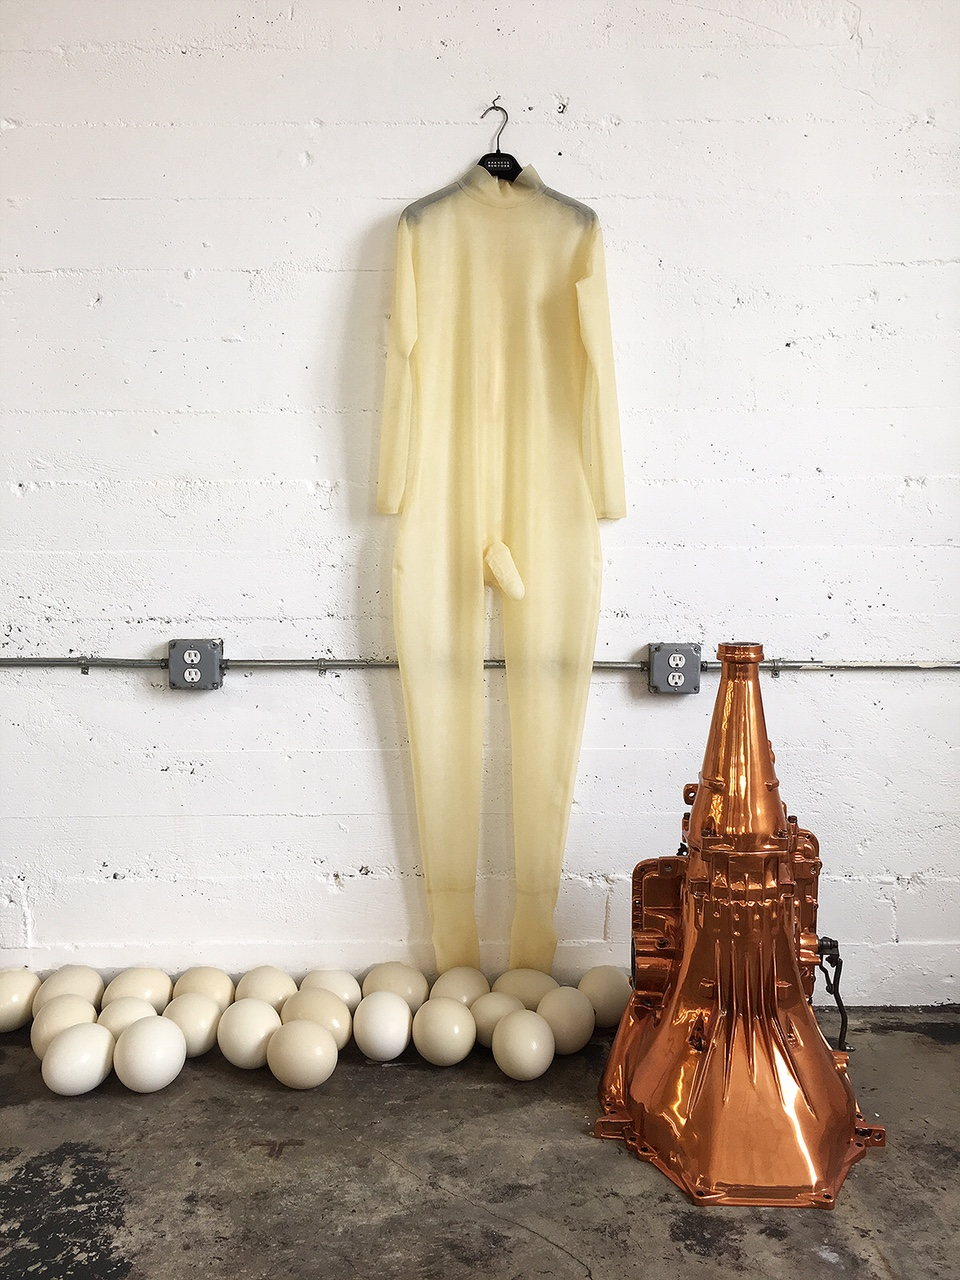 Future Suit, Ostrich Eggs, Copper Transmission